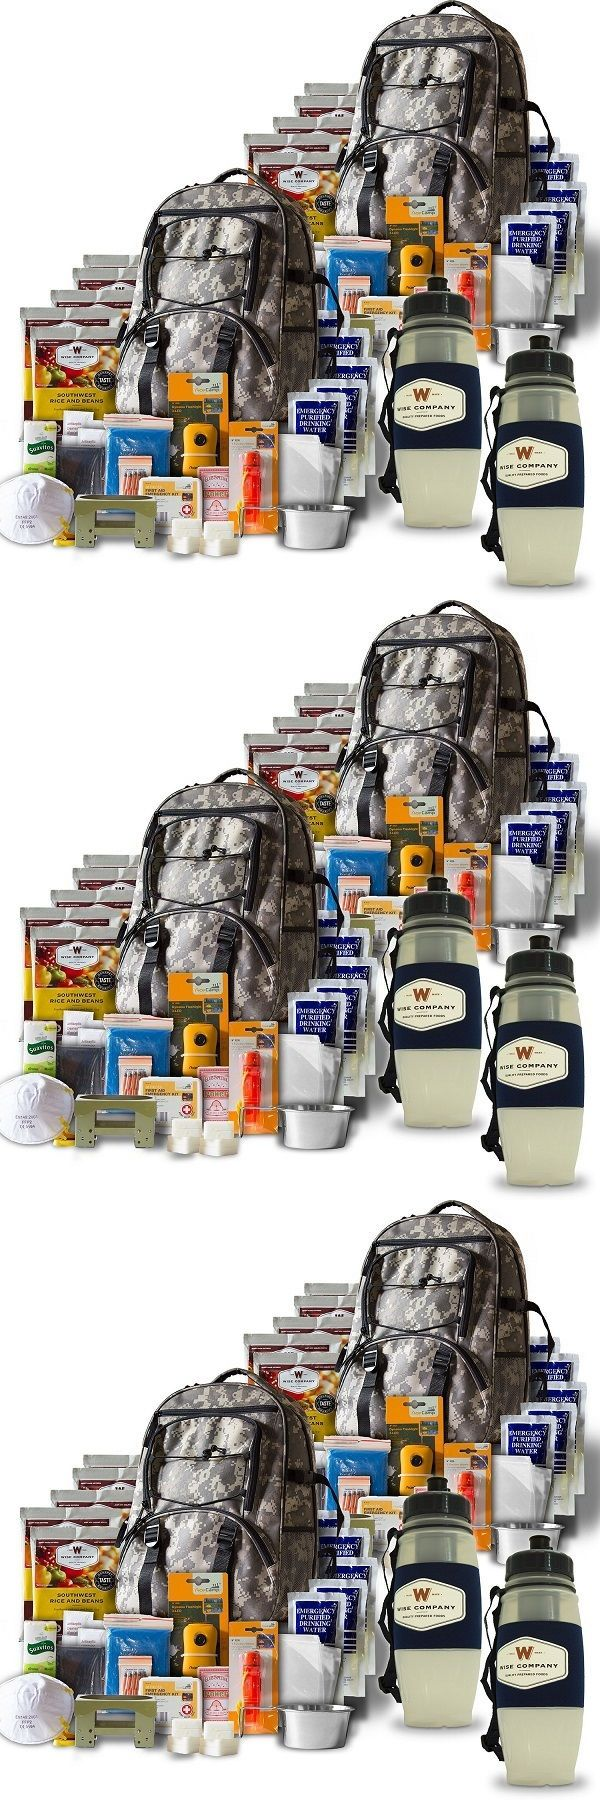 Other Emergency Gear 181415: Emergency Preparedness Backpack Essentials Kit Survival Bugout Bag 2 Person New -> BUY IT NOW ONLY: $197.99 on eBay!